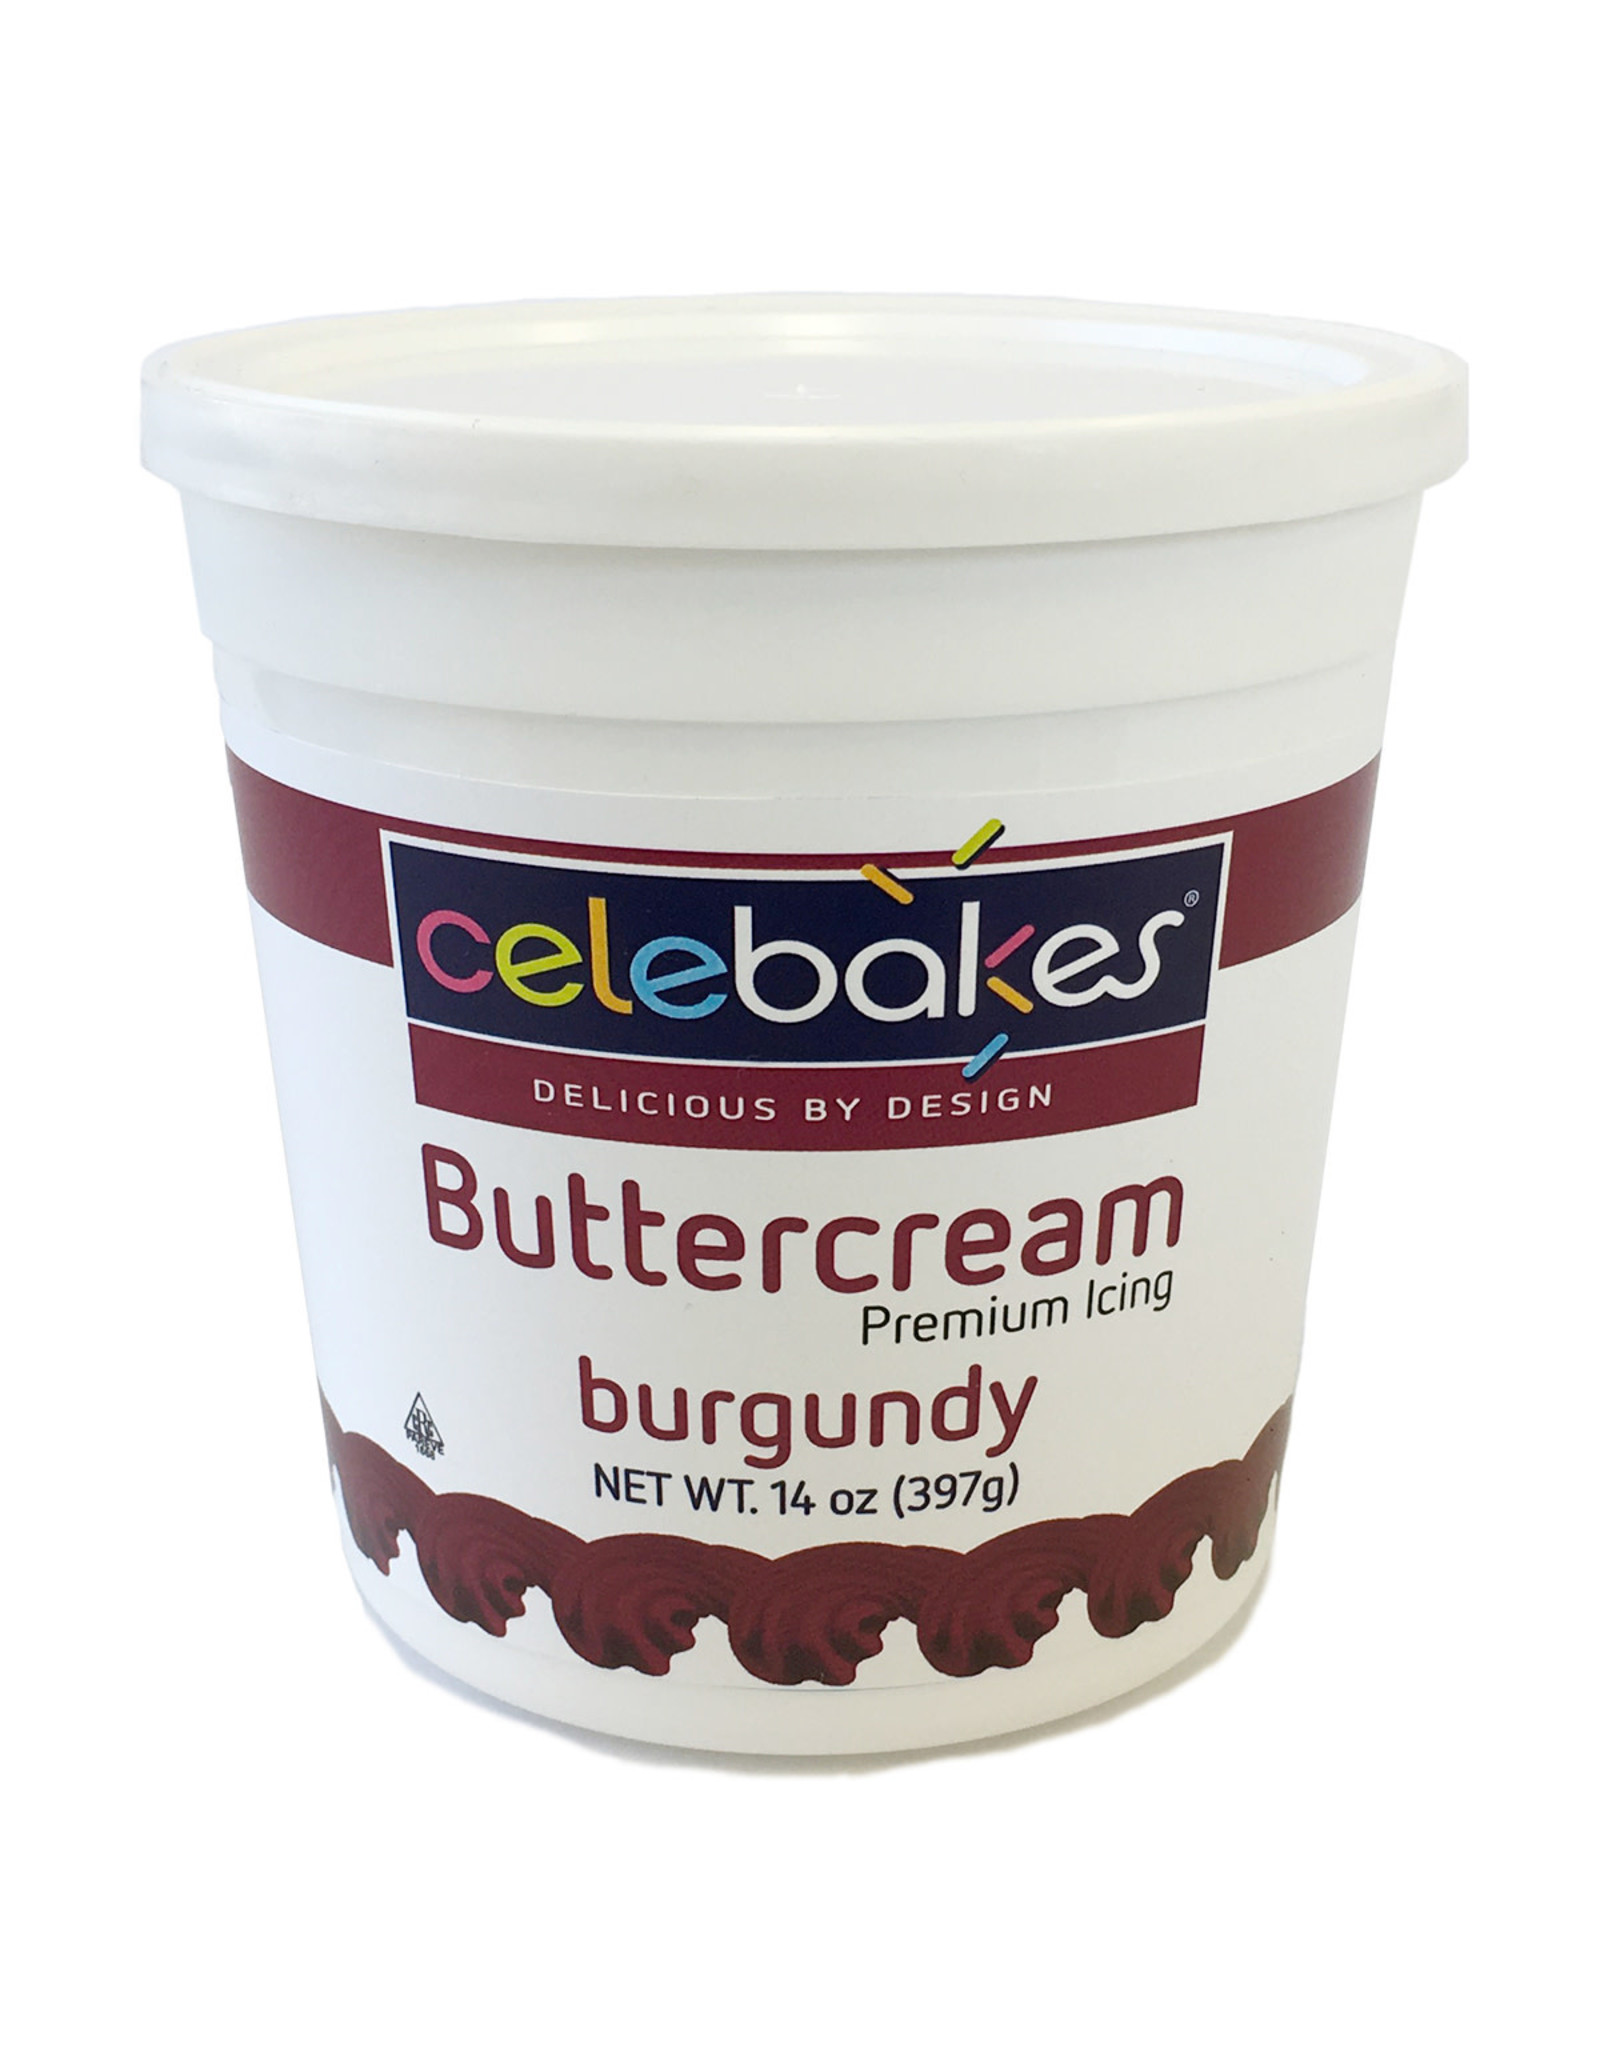 14 oz Celebakes Burgundy Buttercream Icing